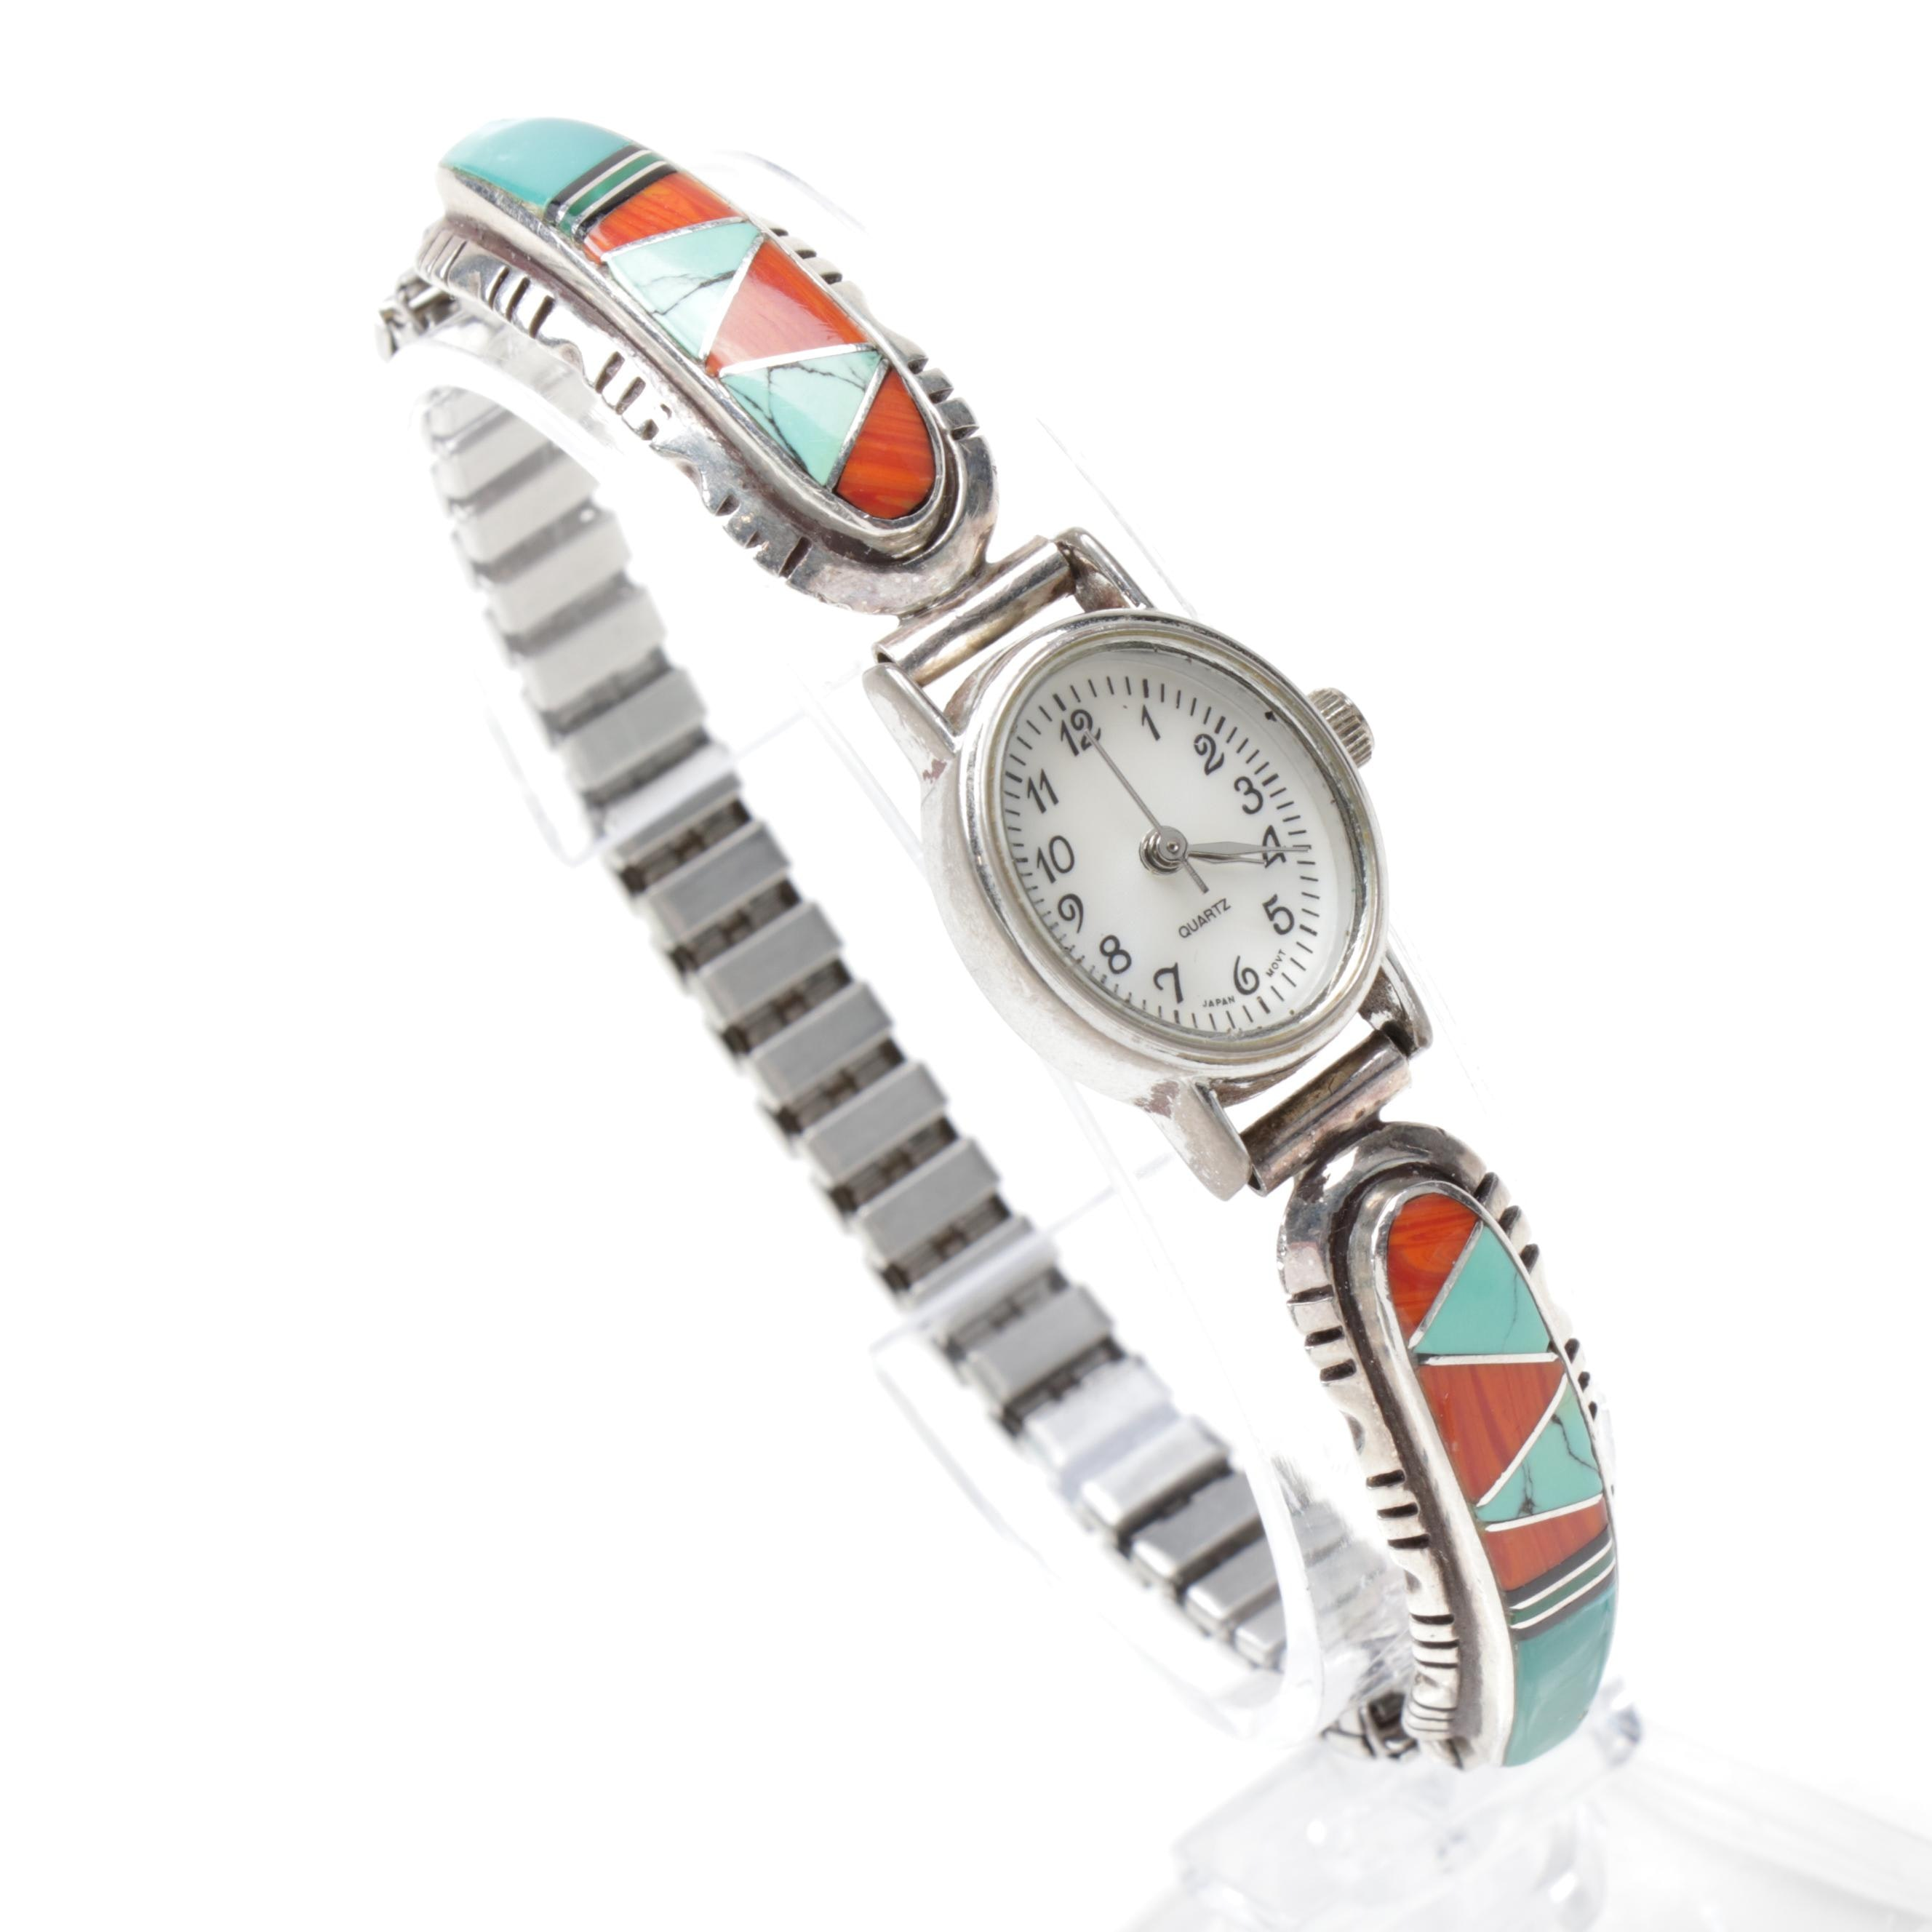 Sterling Silver, Metal, Turquoise, and Coral Southwest Style Watch